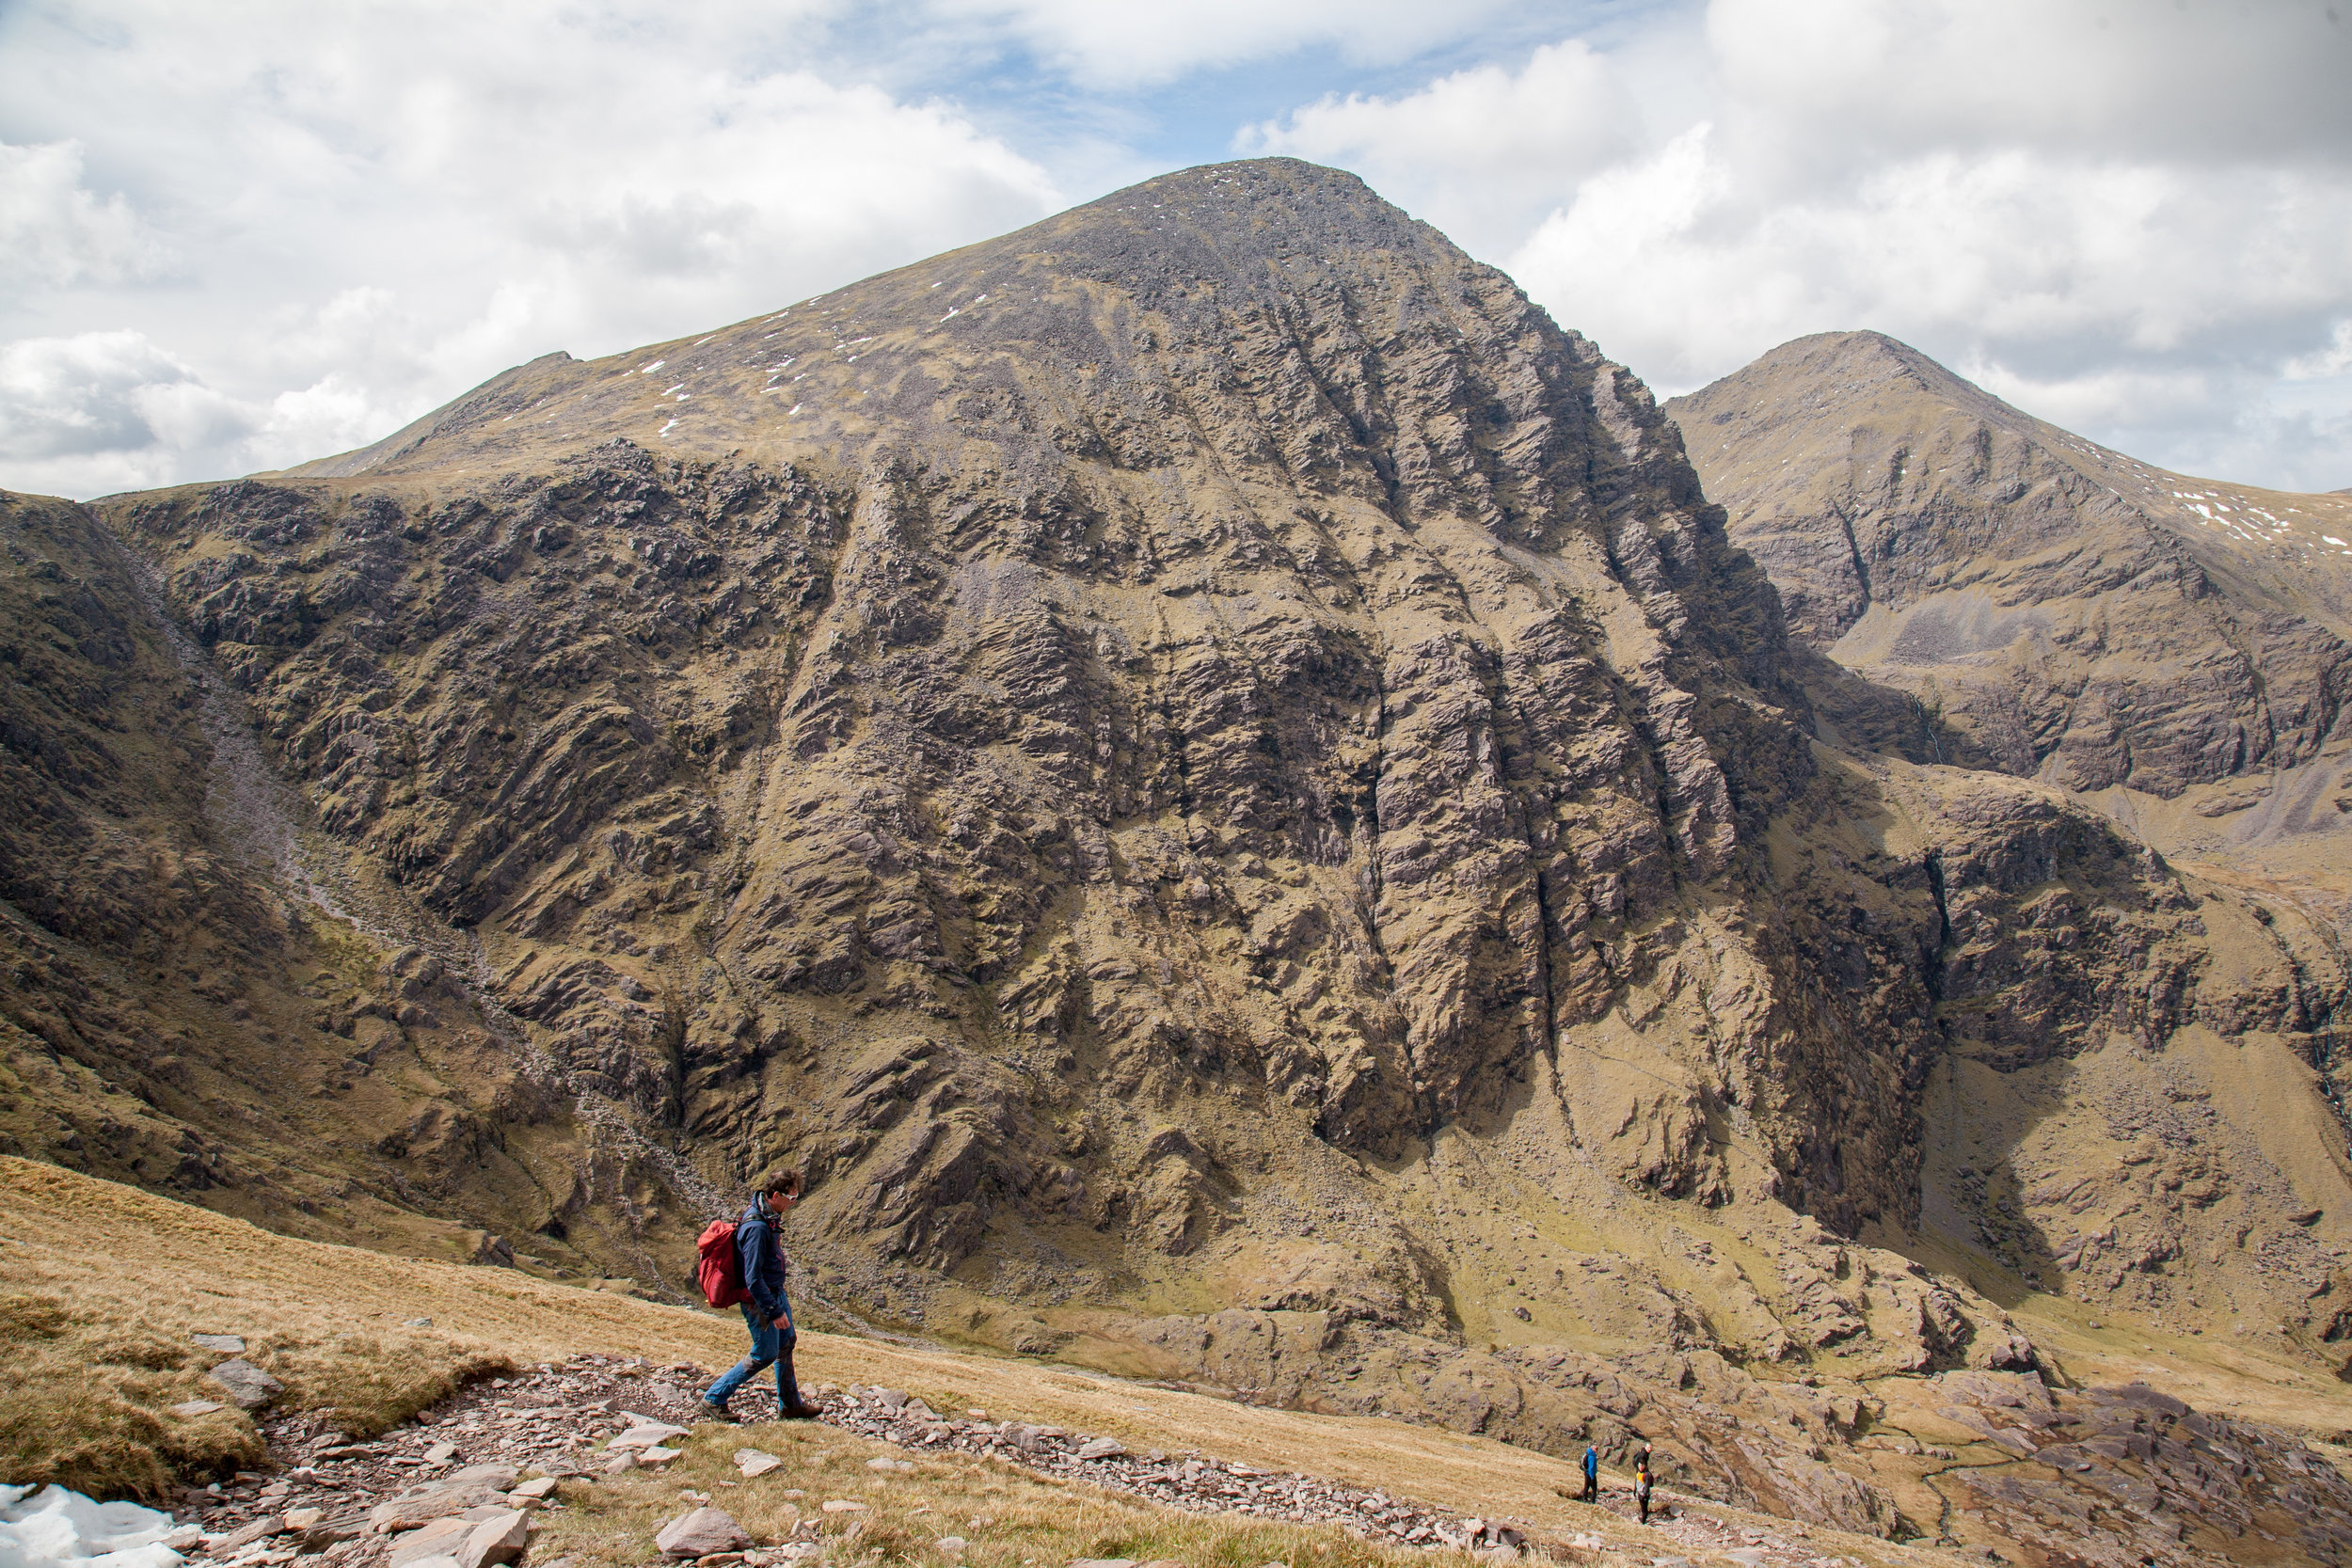 Carrauntoohil, Reeks District, Ireland. Photograph by Tadhg Hayes.